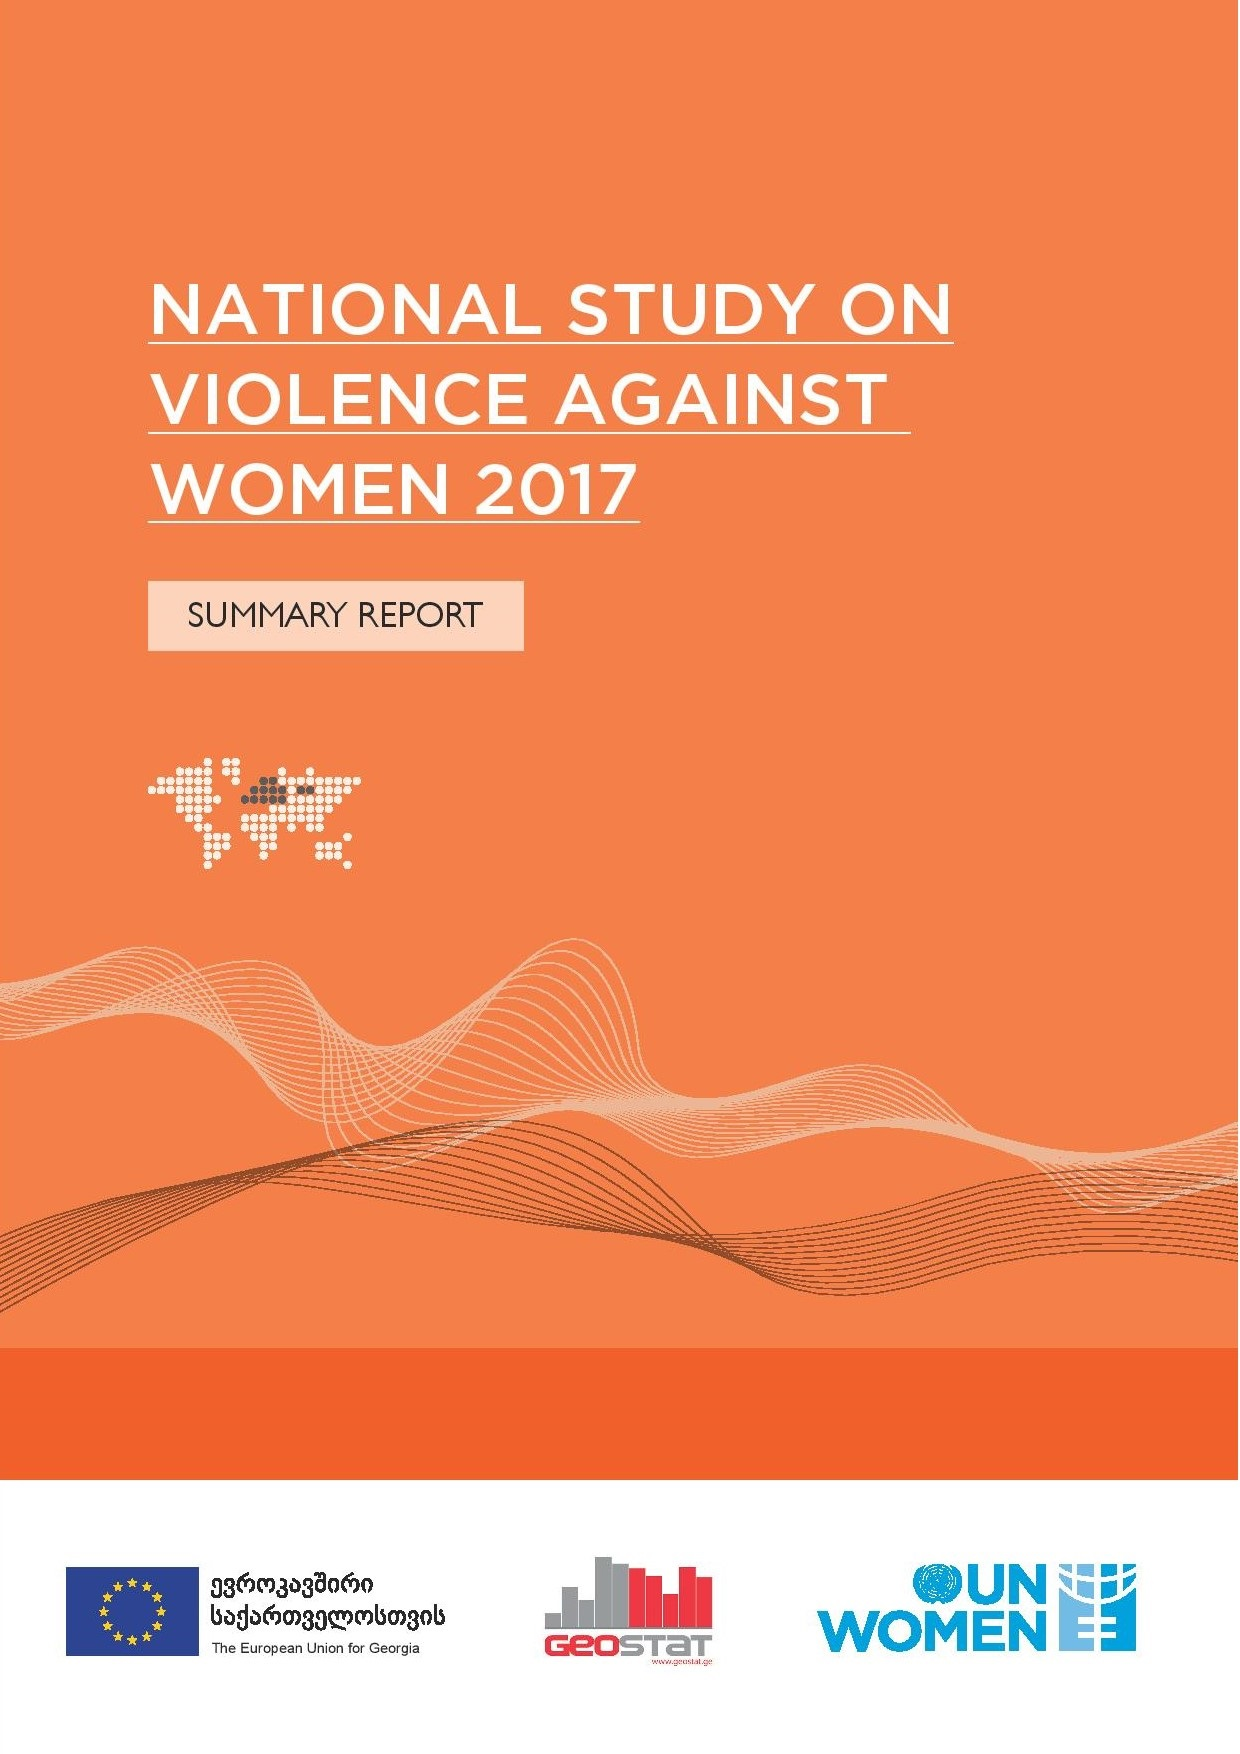 National study on violence against women 2017